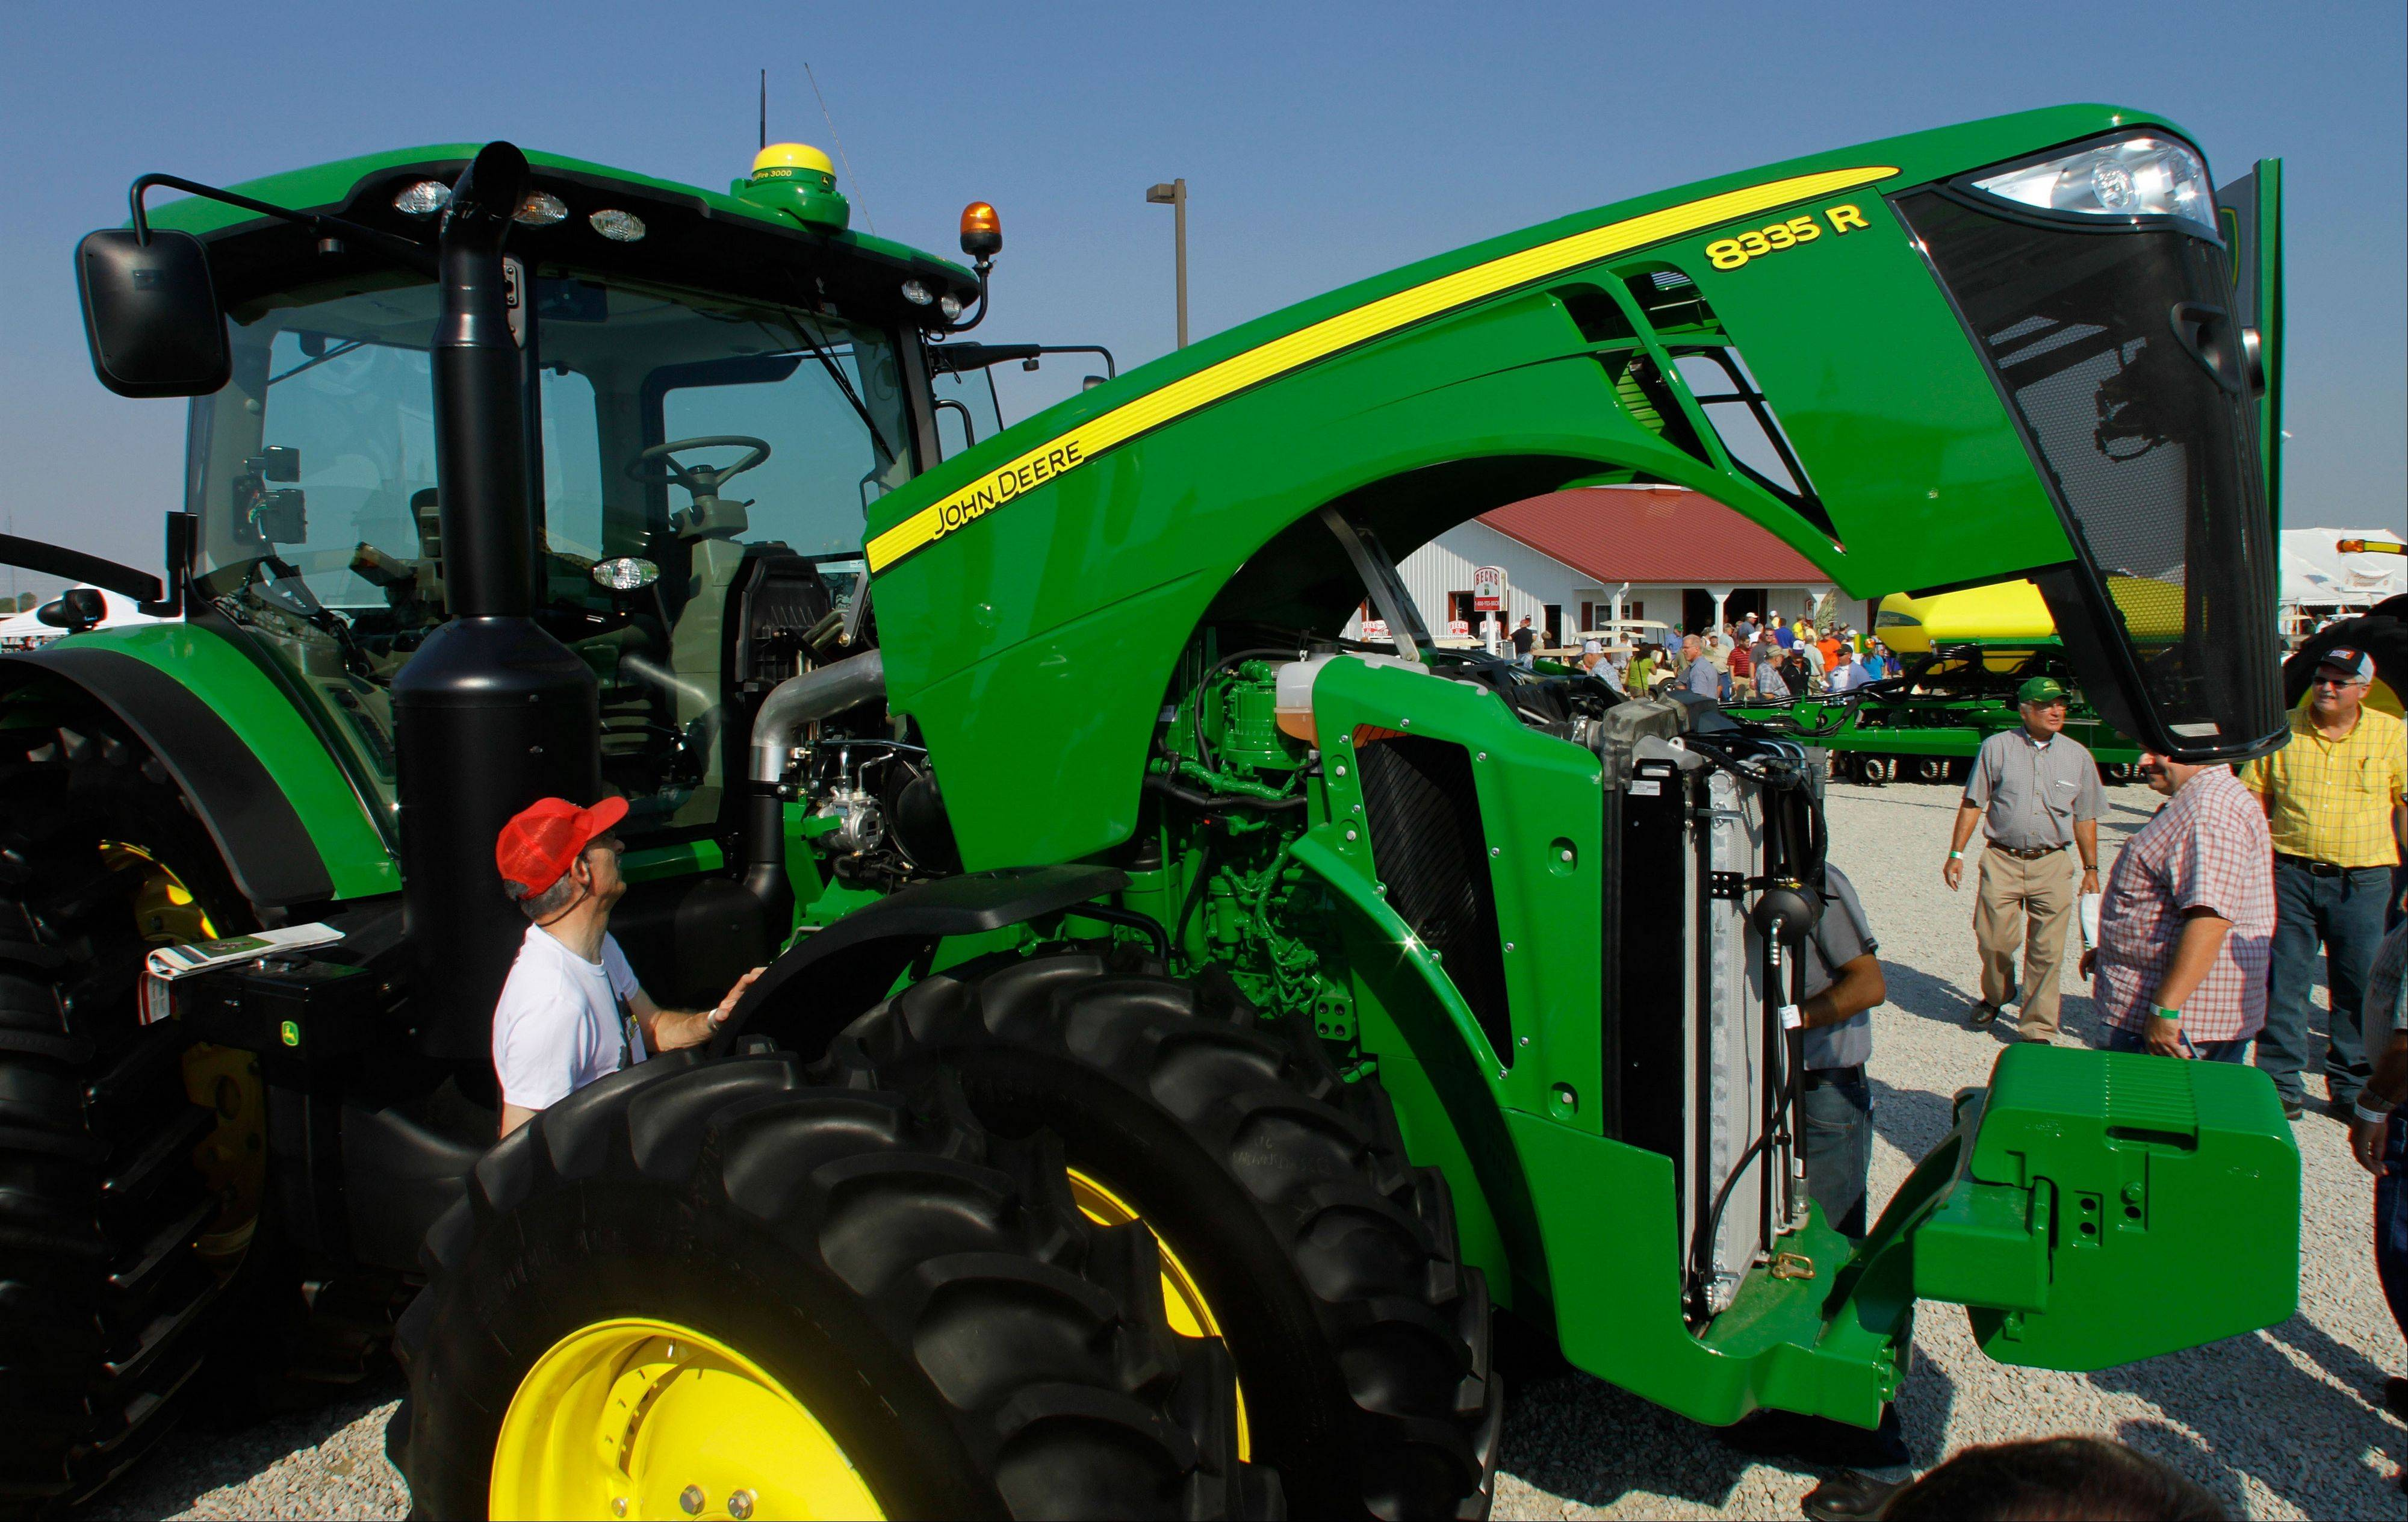 Ed Kach of Chillicothe, left, examines a John Deere tractor during the Farm Progress Show in Decatur.